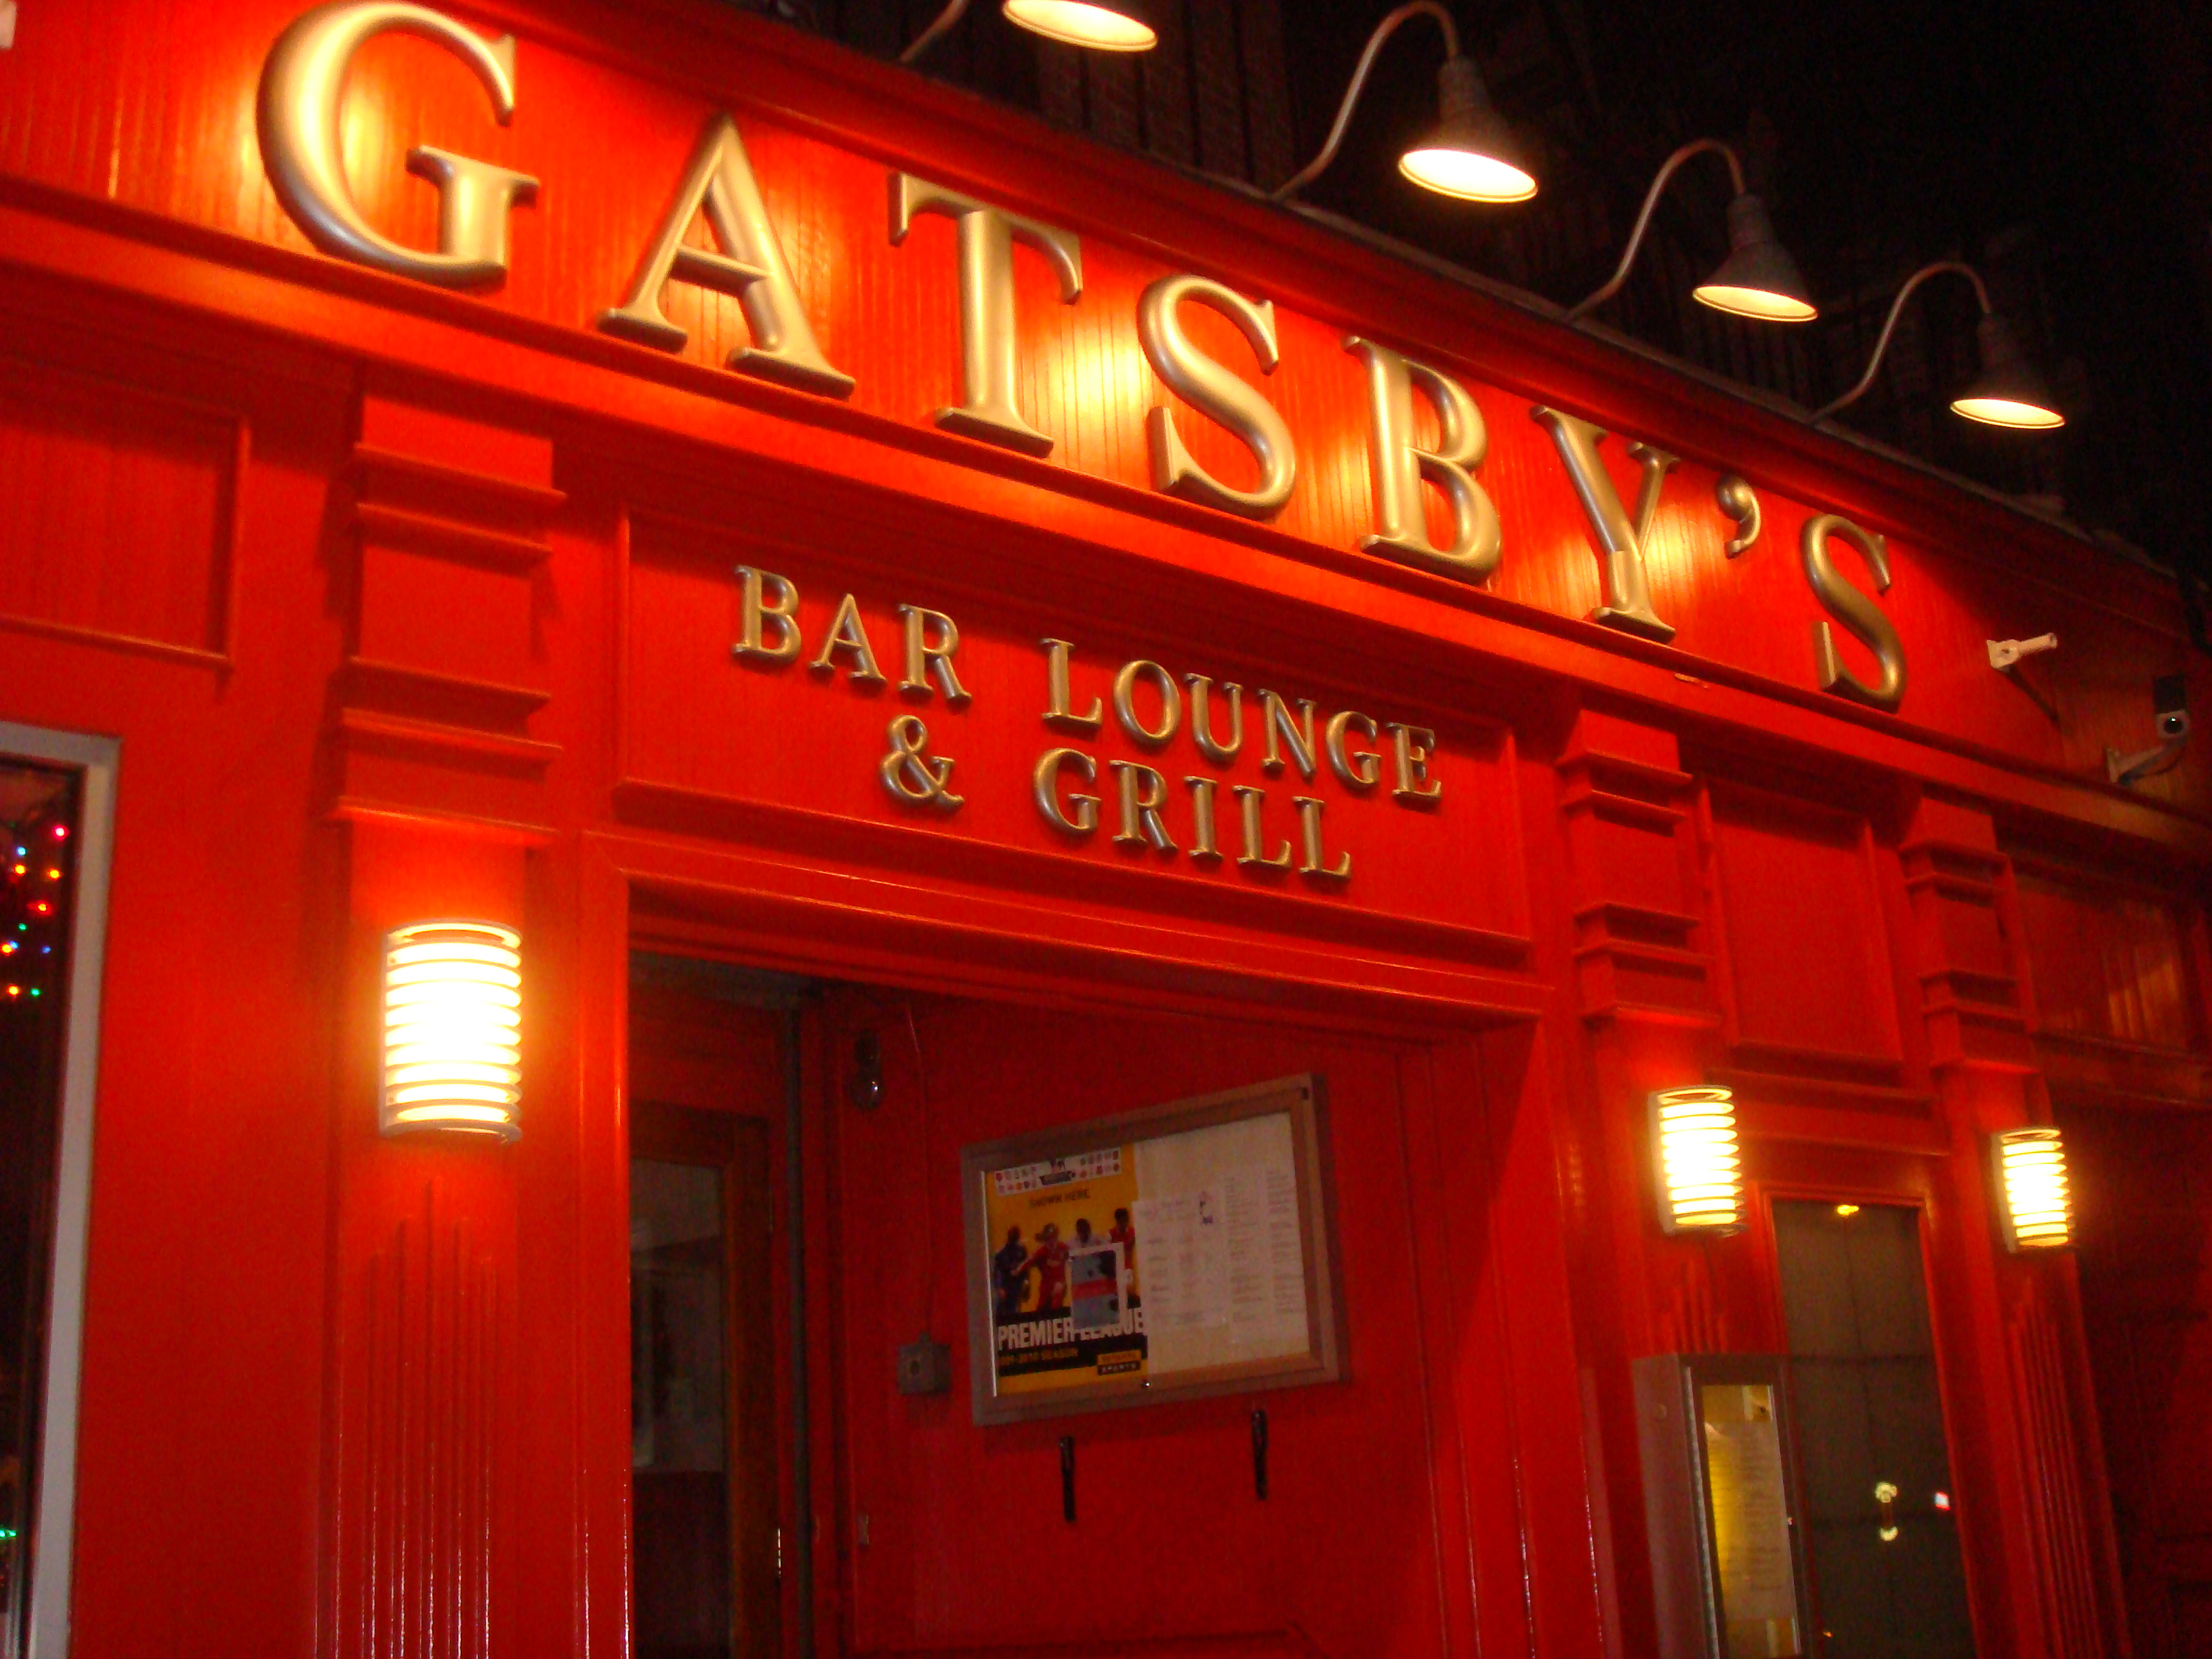 Gatsby's Bar, Lounge & Grill